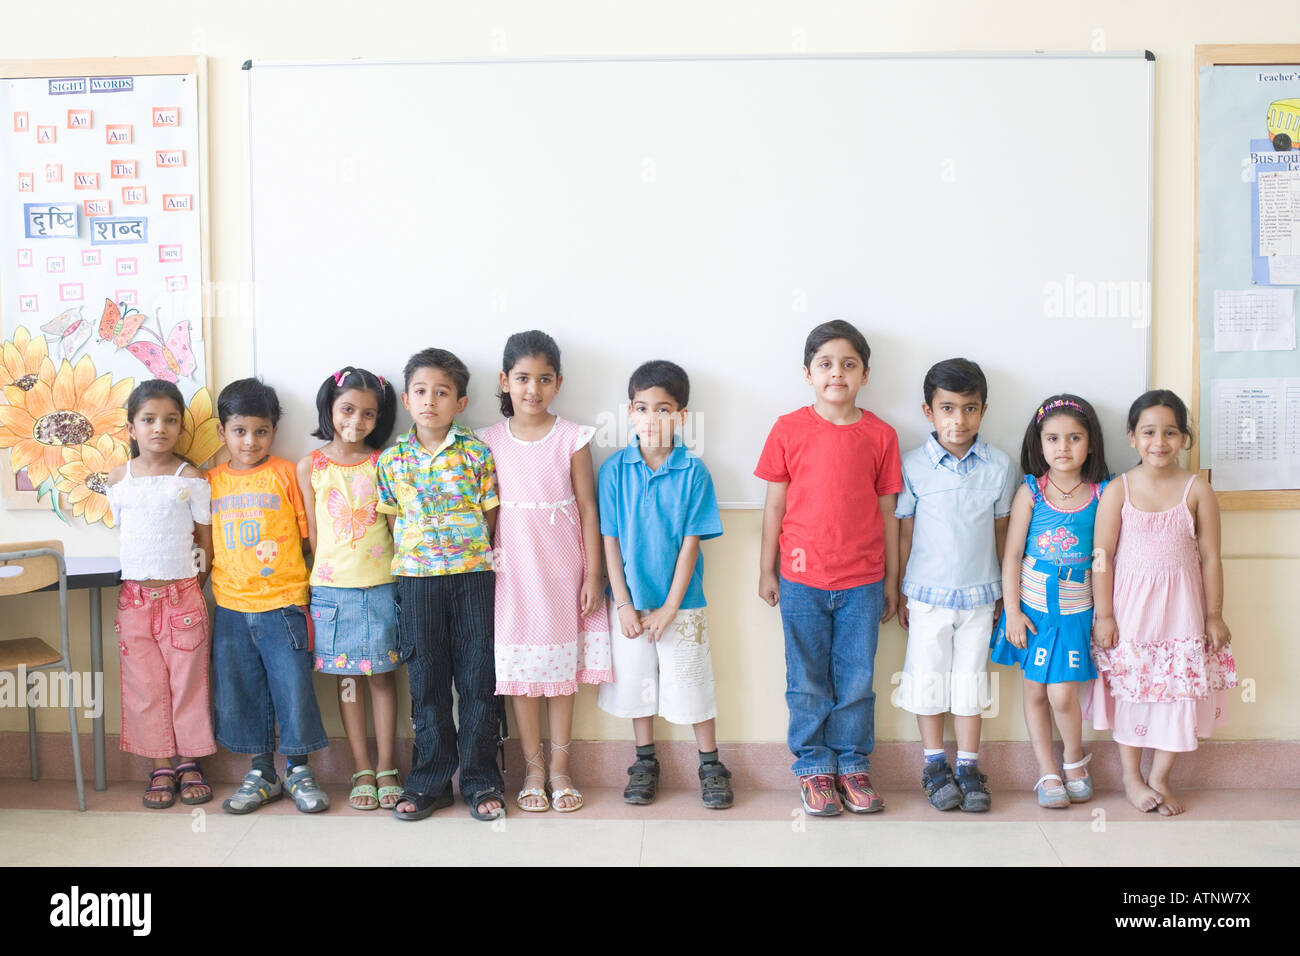 Children Standing In Front Of The Whiteboard In A